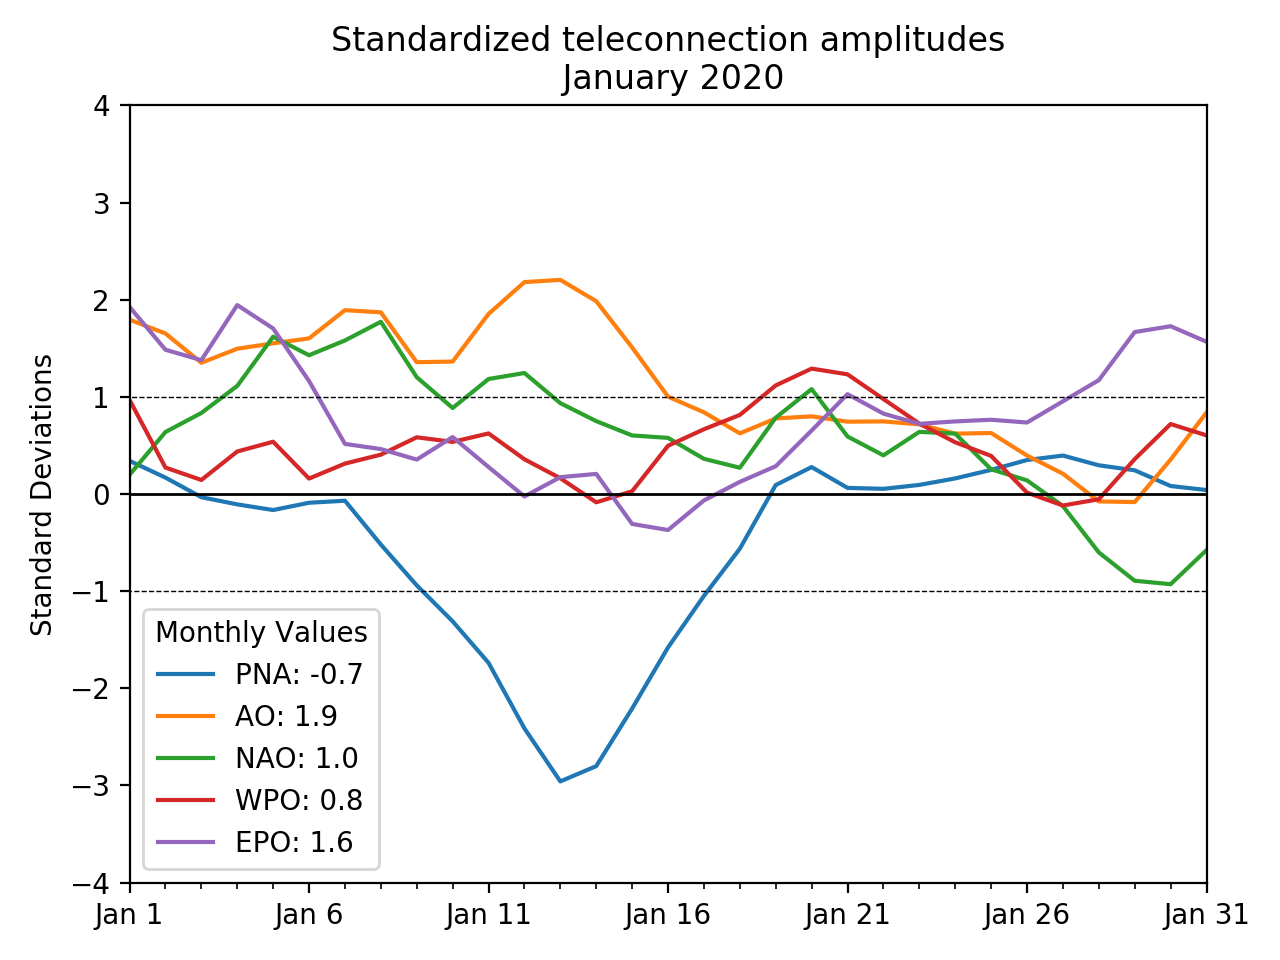 Time series of the PNA, AO, NAO, WPO, and EPO teleconnection indices for January 2020